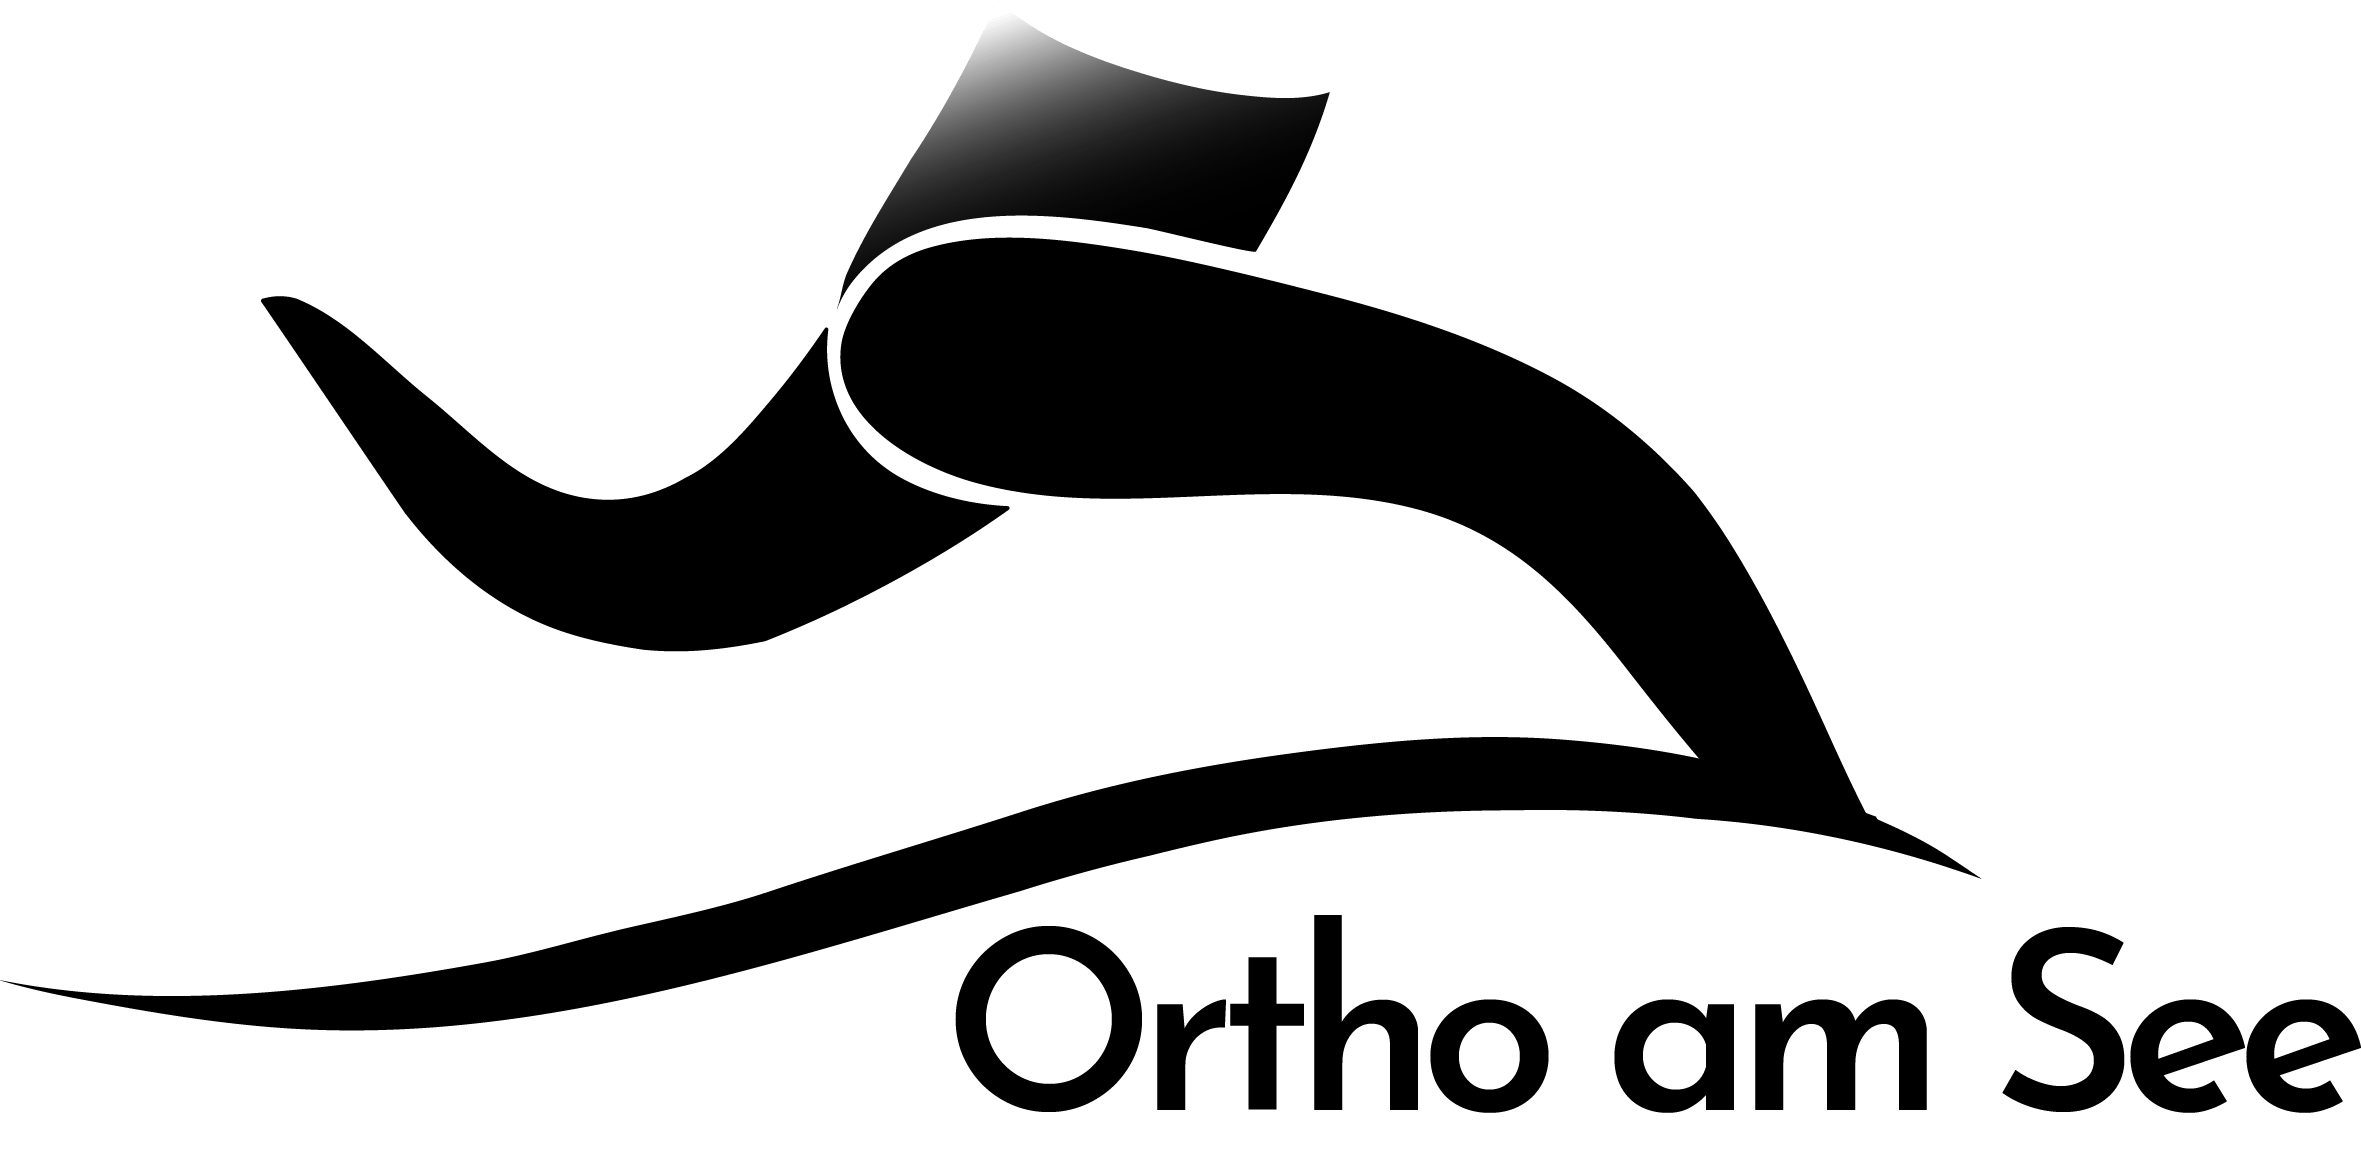 Ortho am See